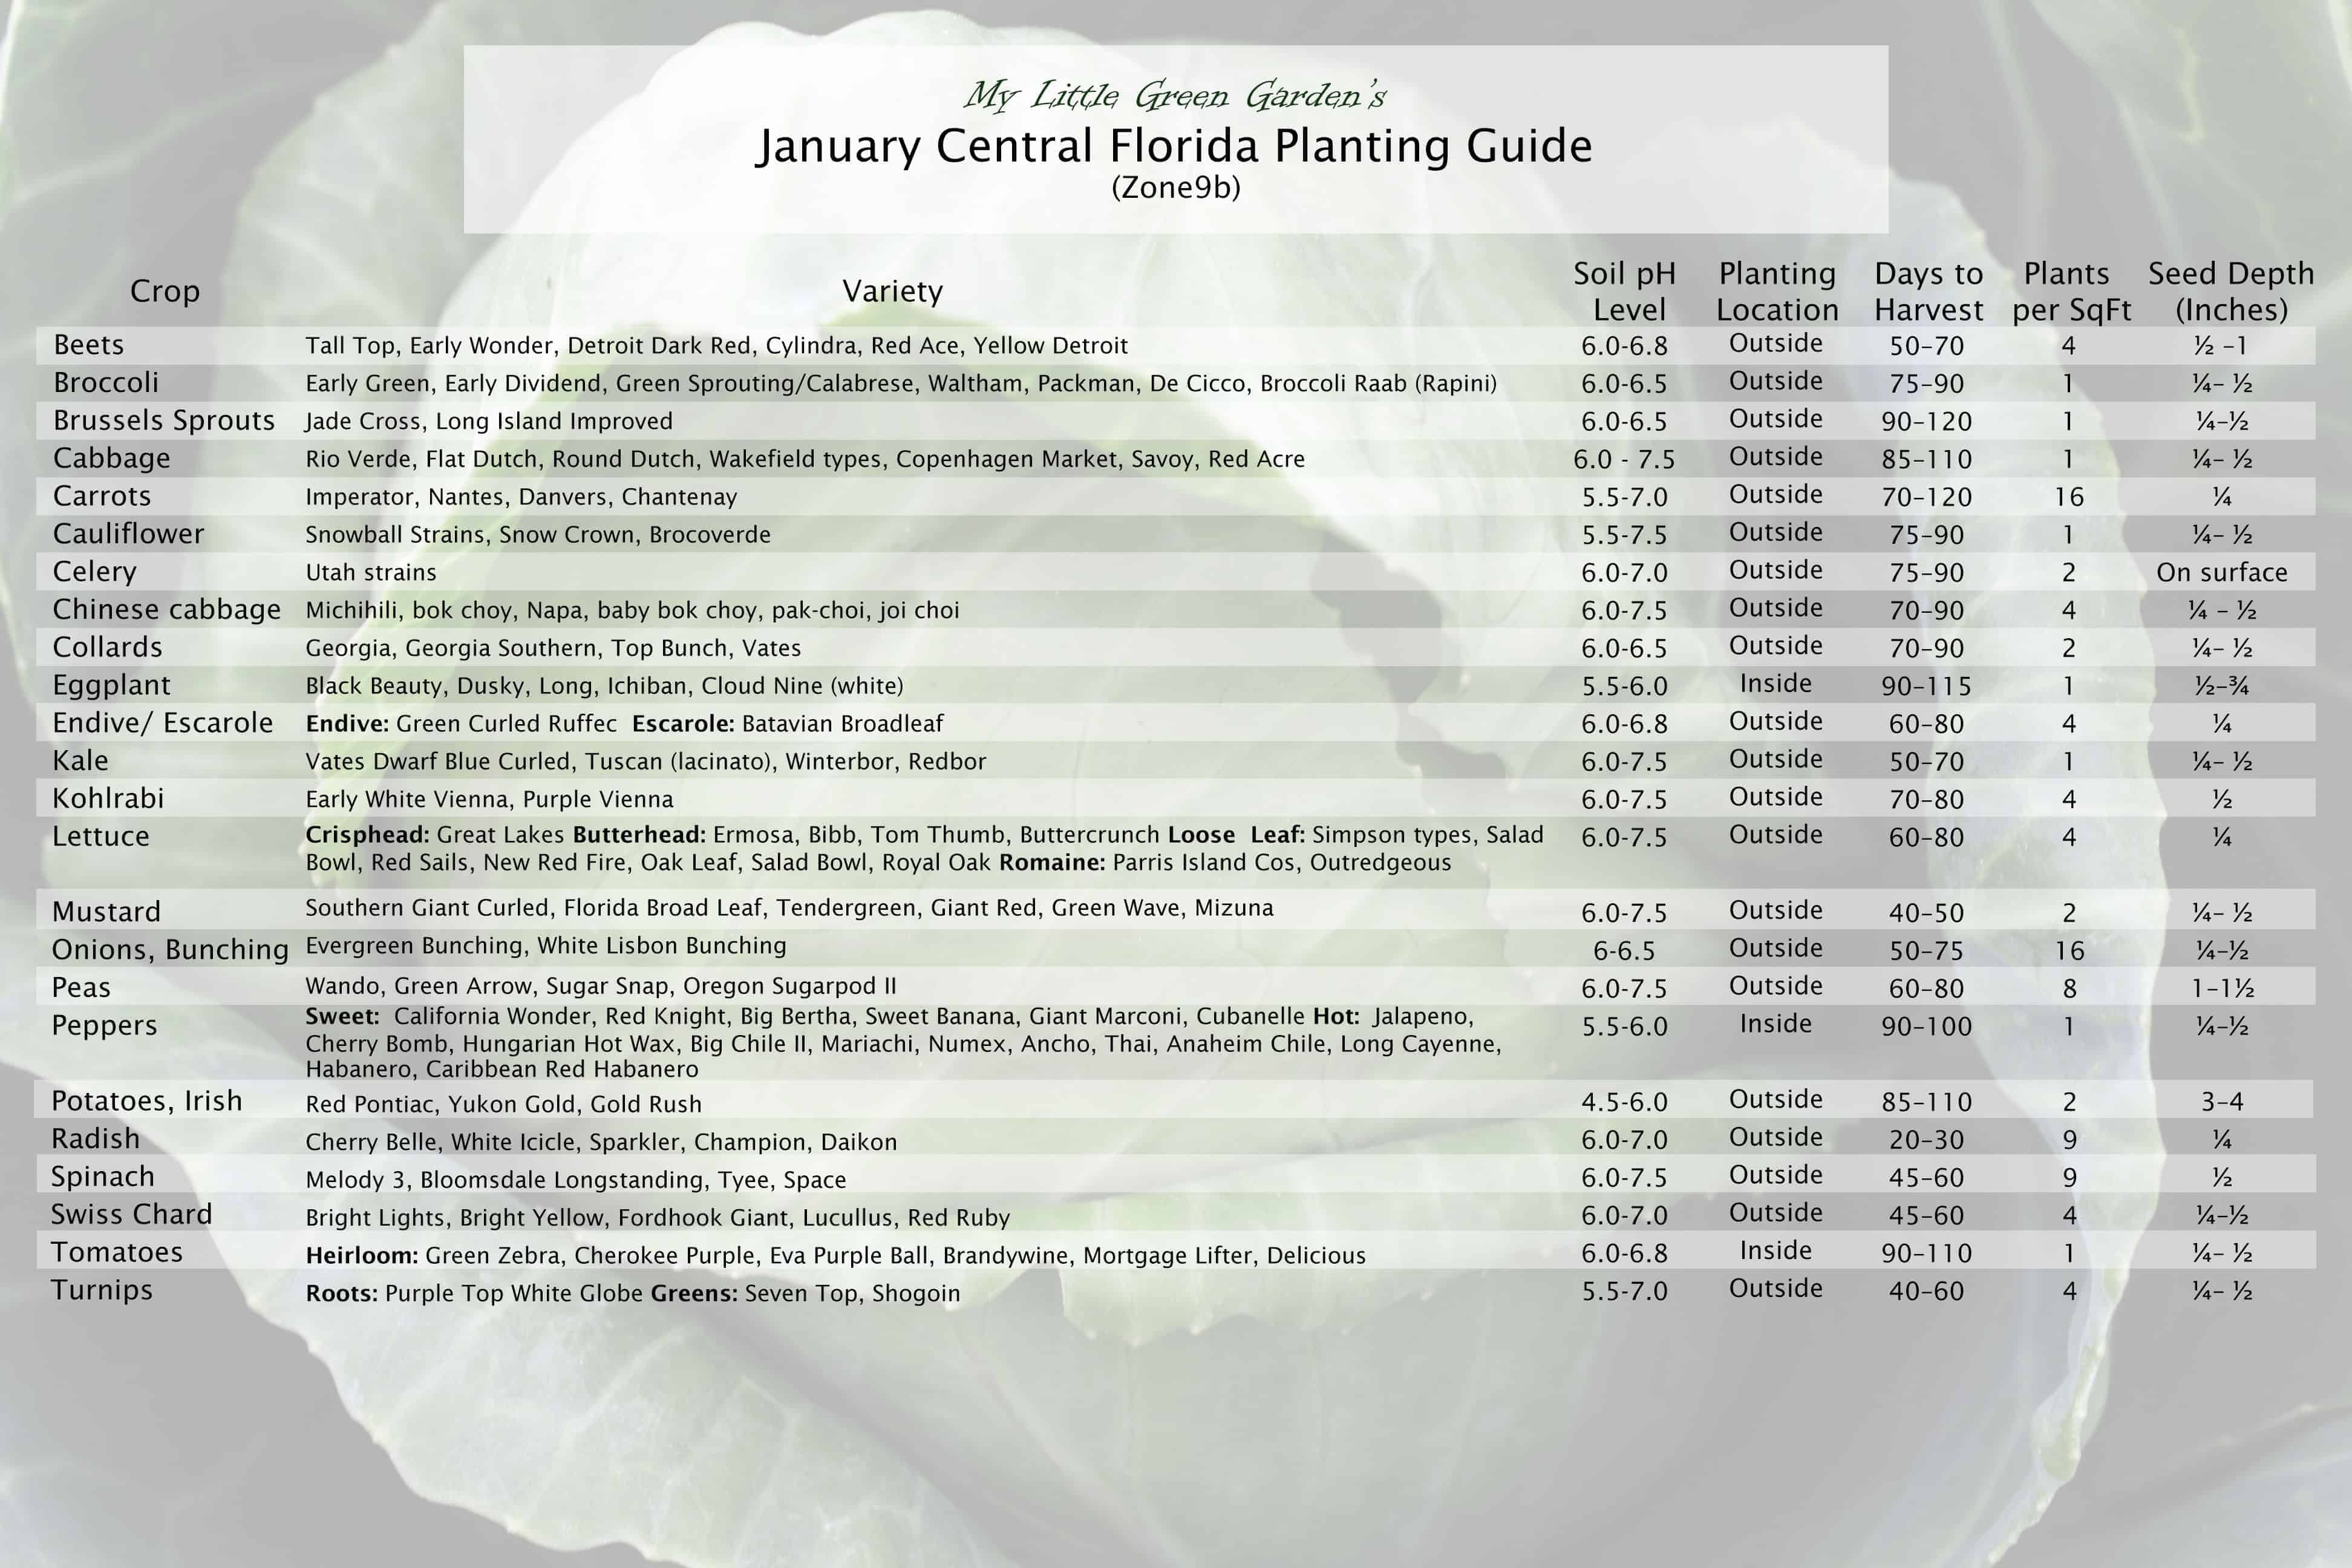 January Vegetable Planting Guide for Central Florida